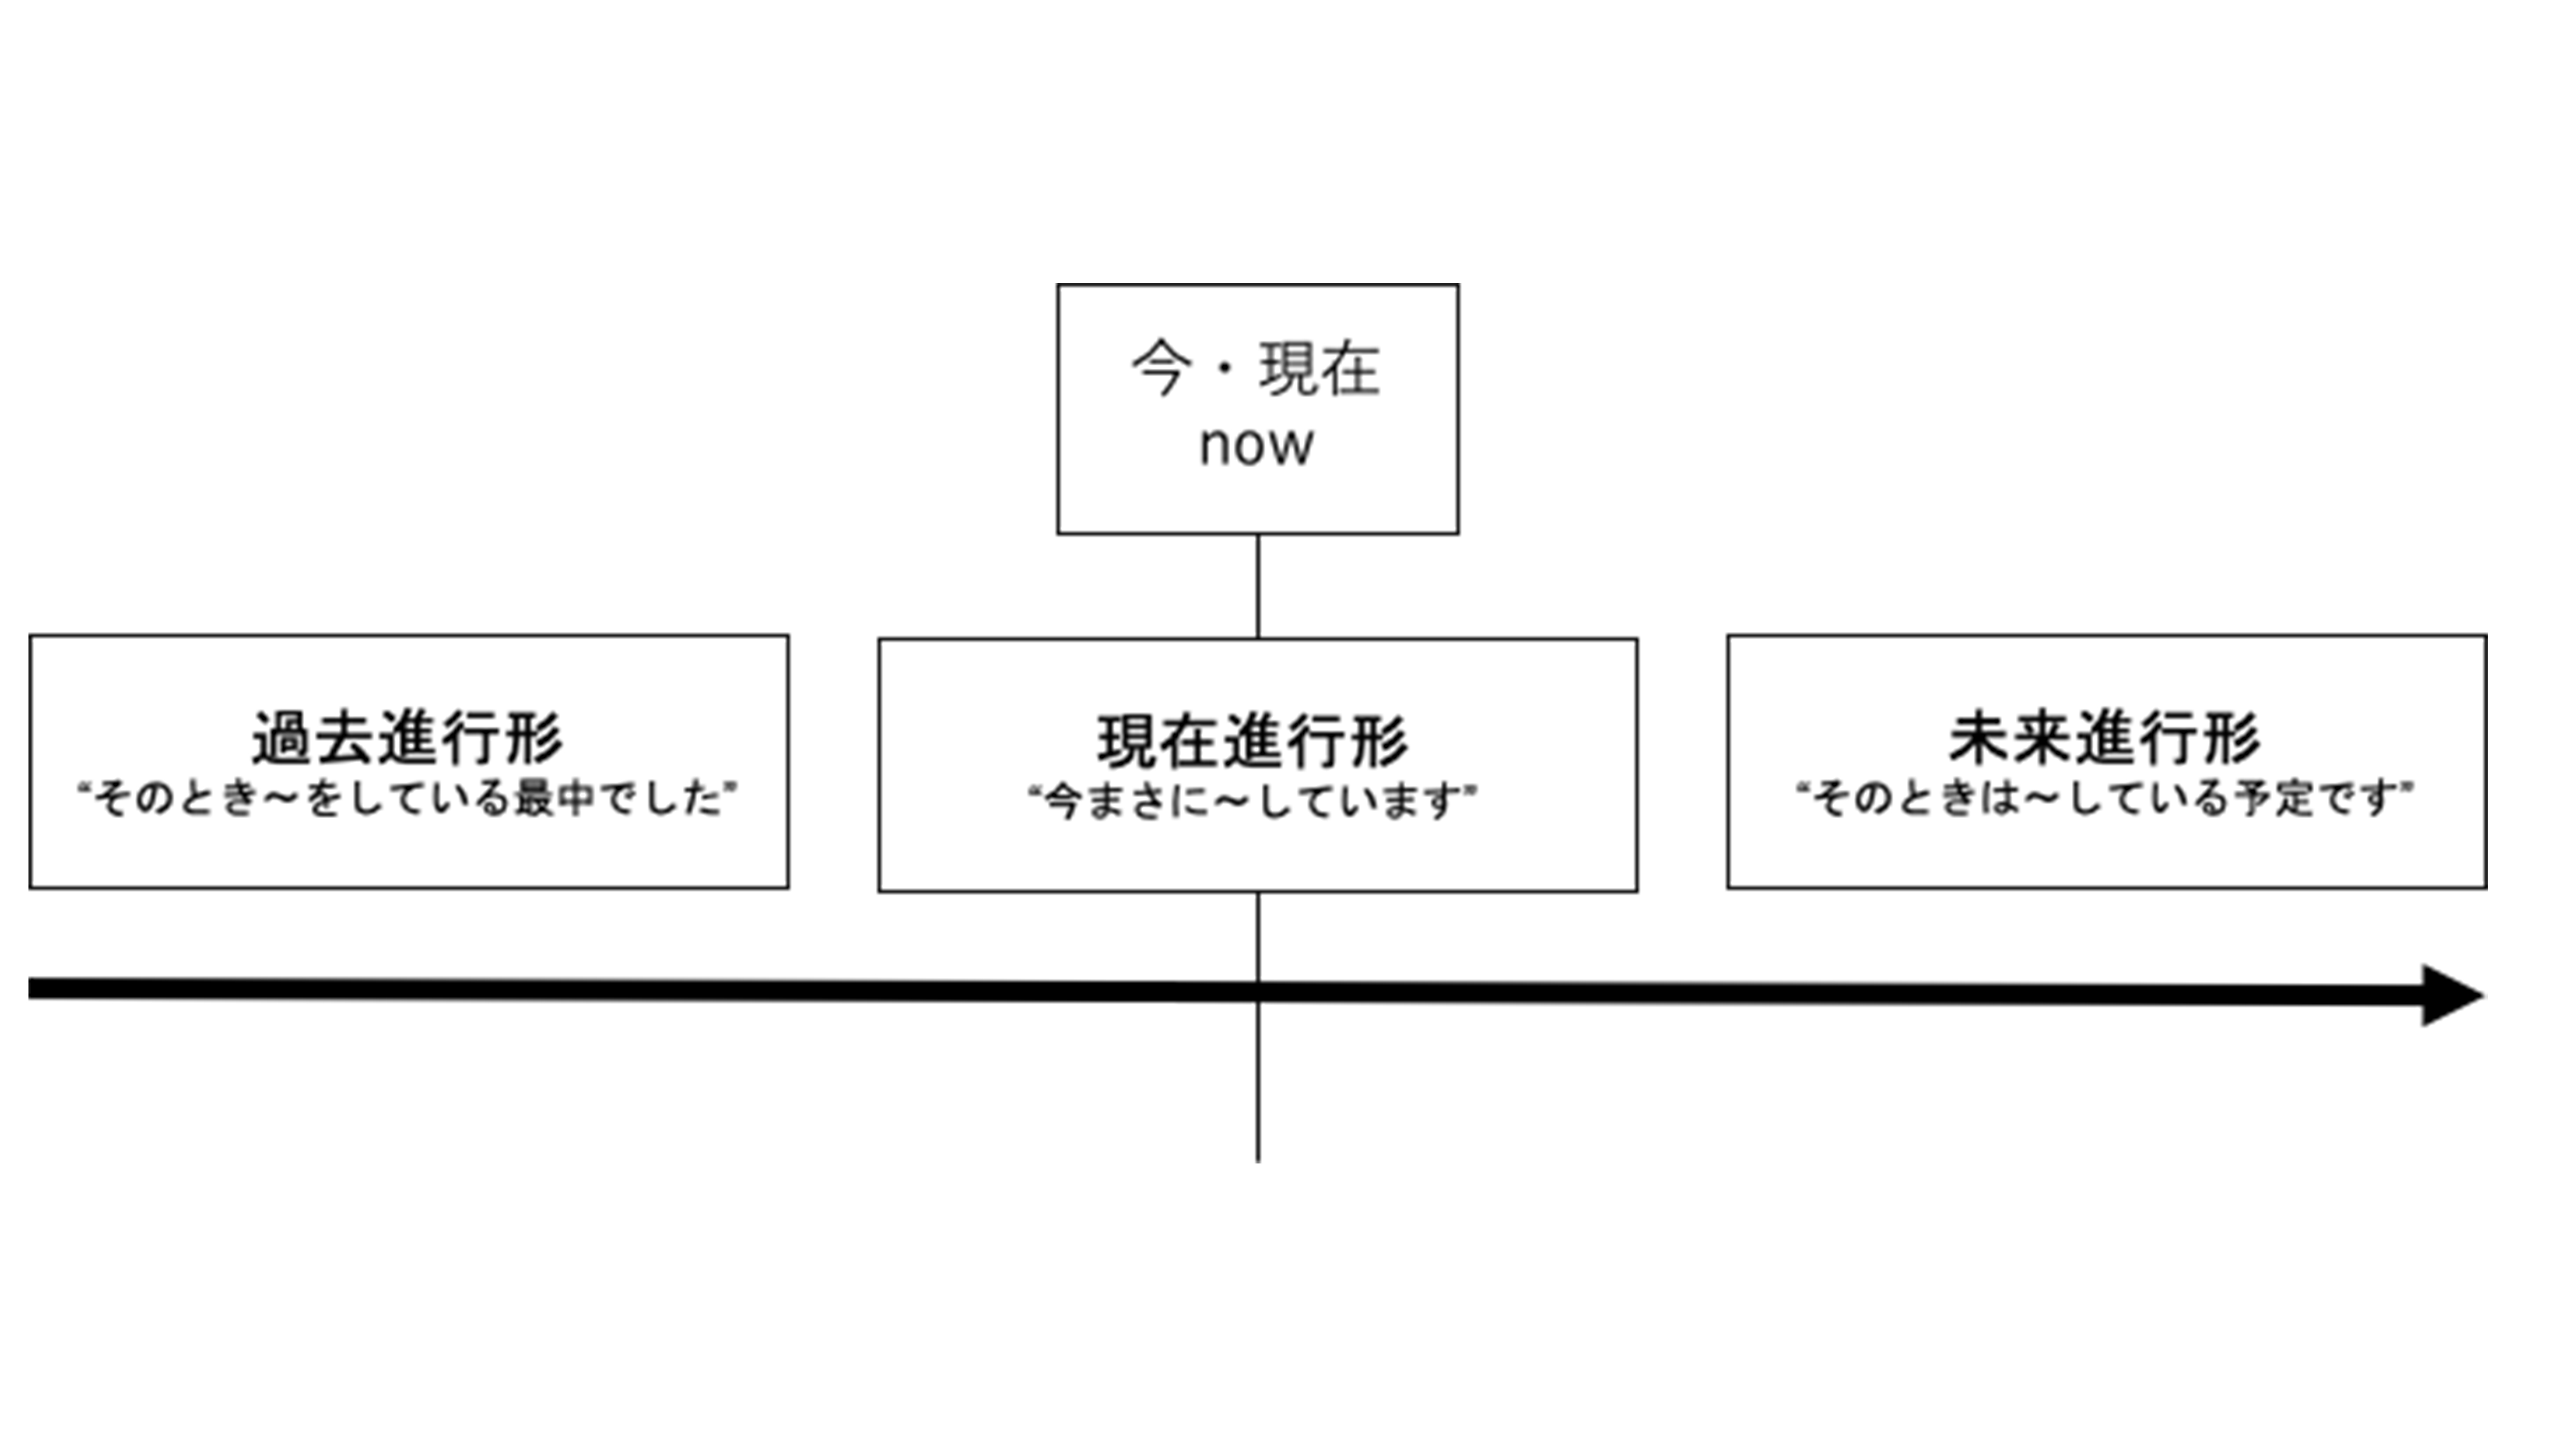 That 意味 at time